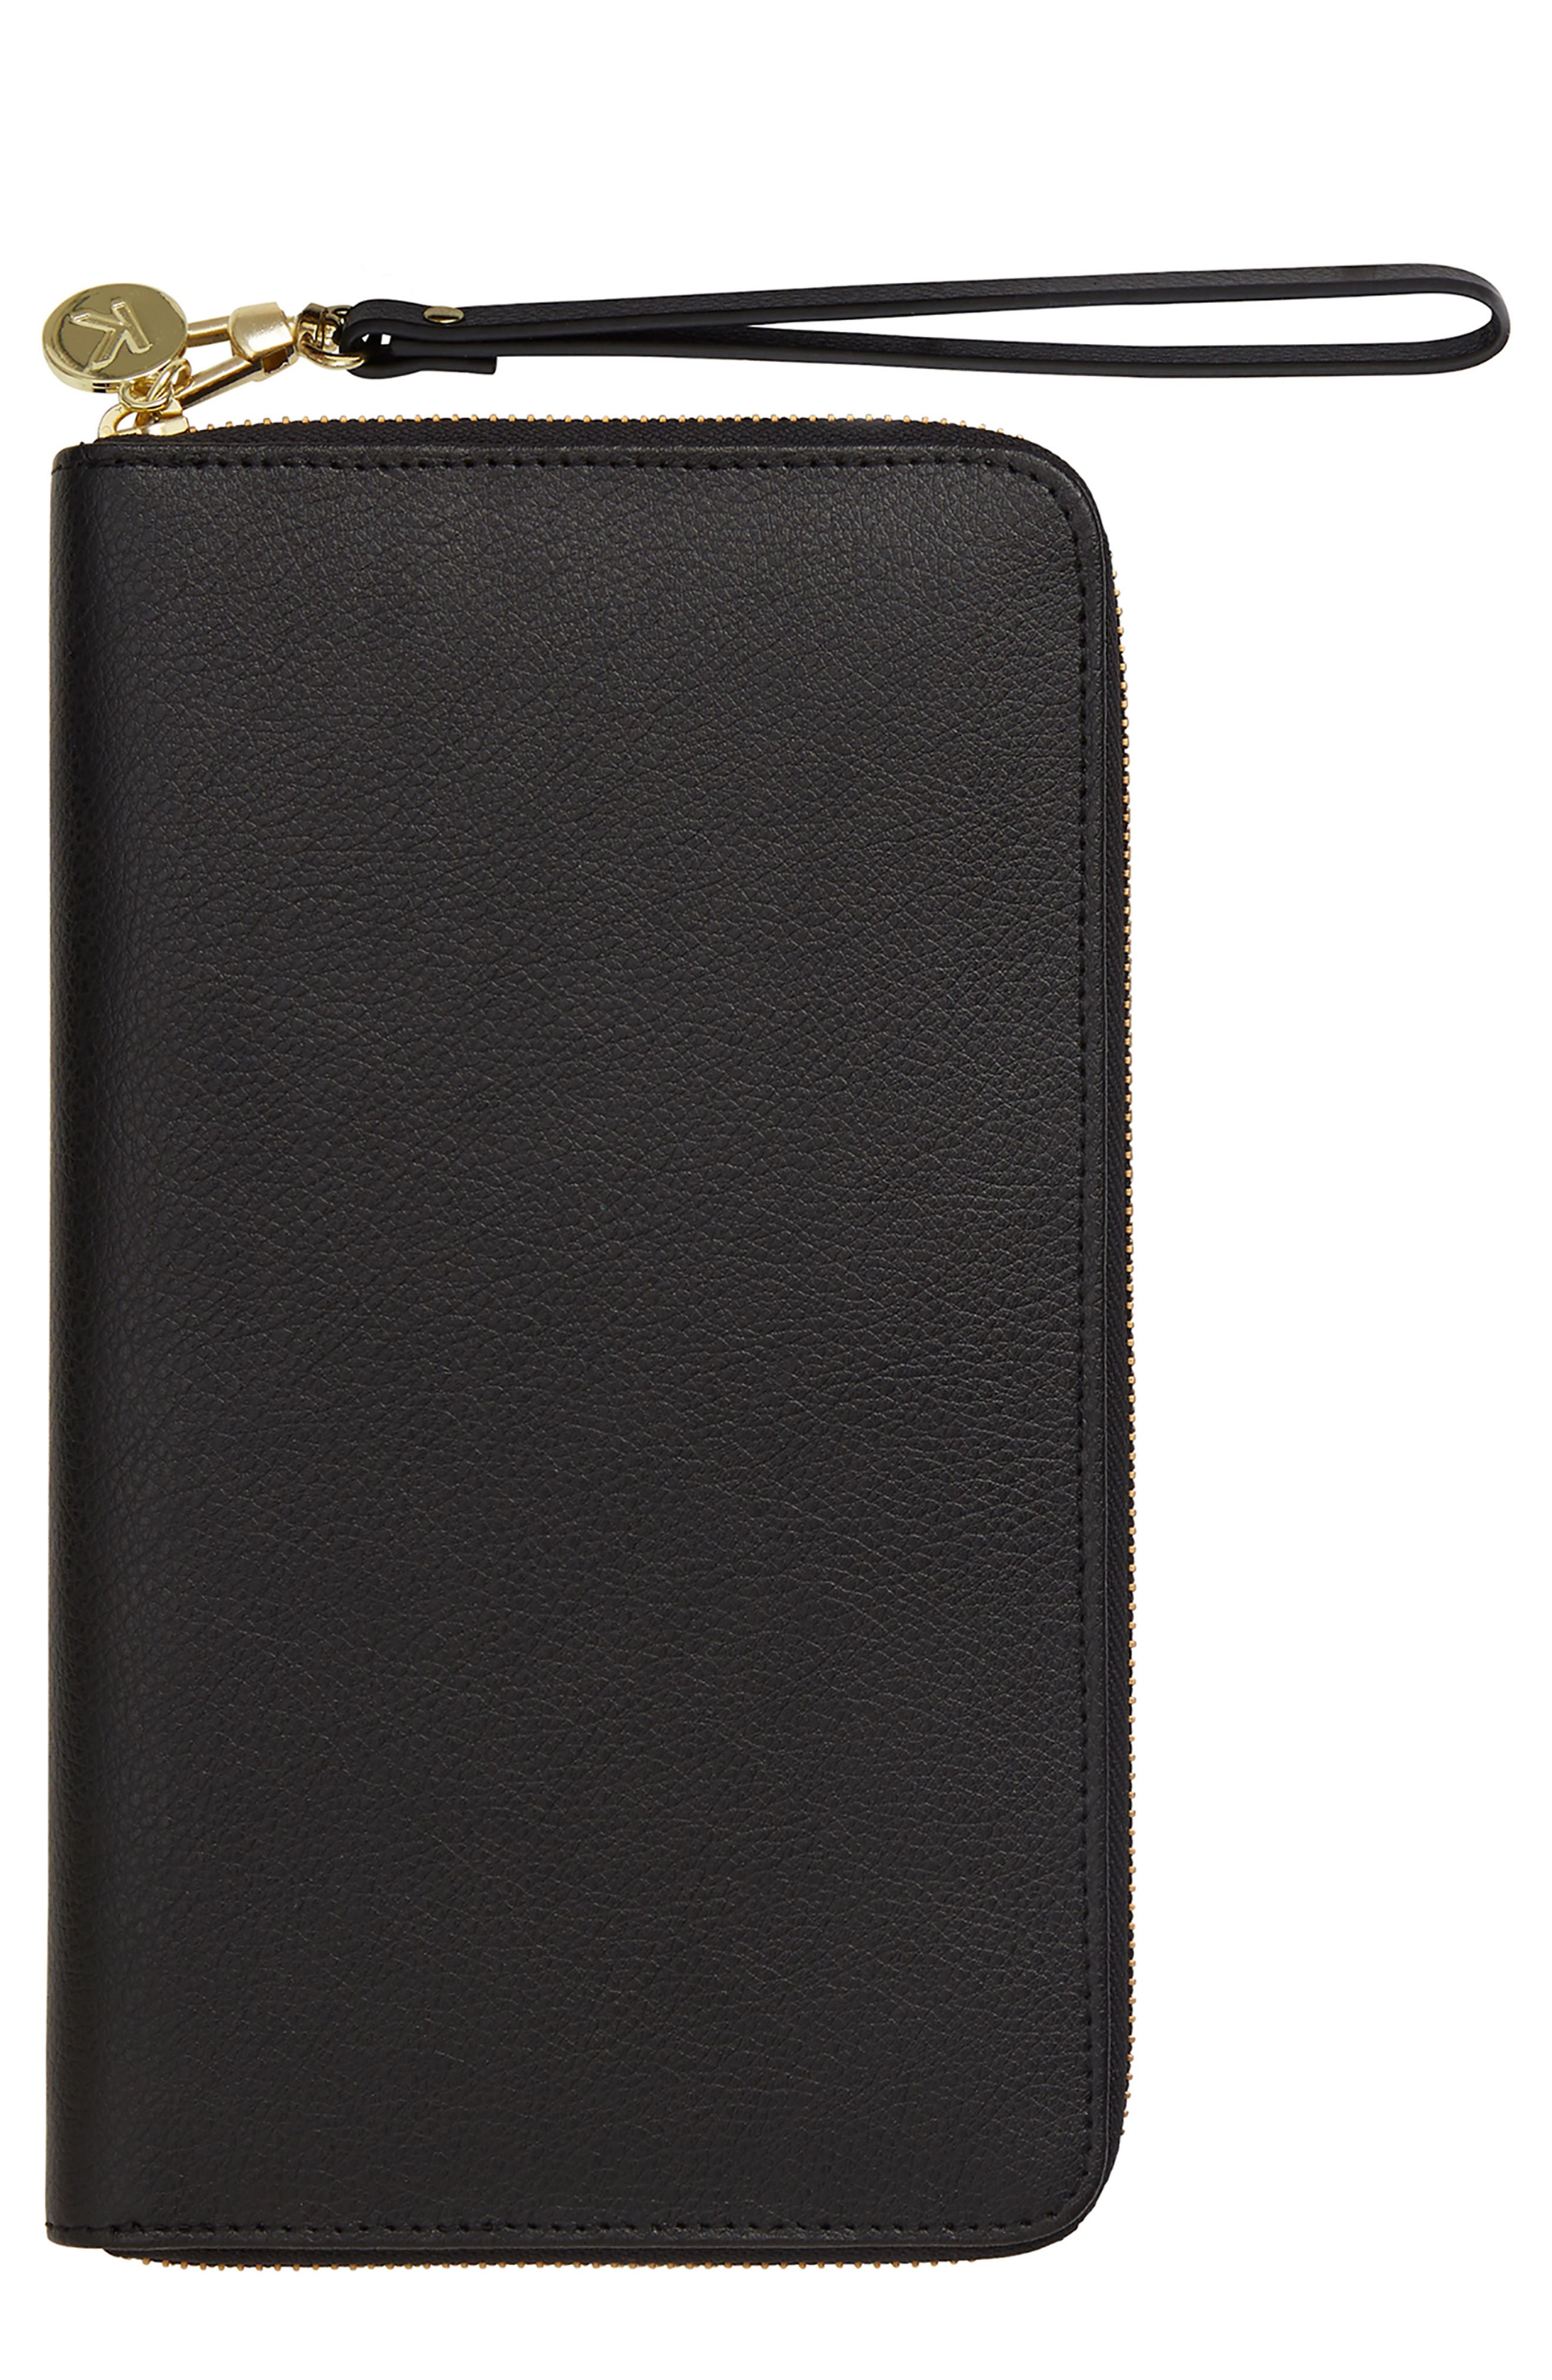 Leather Zip-Around Travel Wallet,                             Main thumbnail 1, color,                             JET BLACK